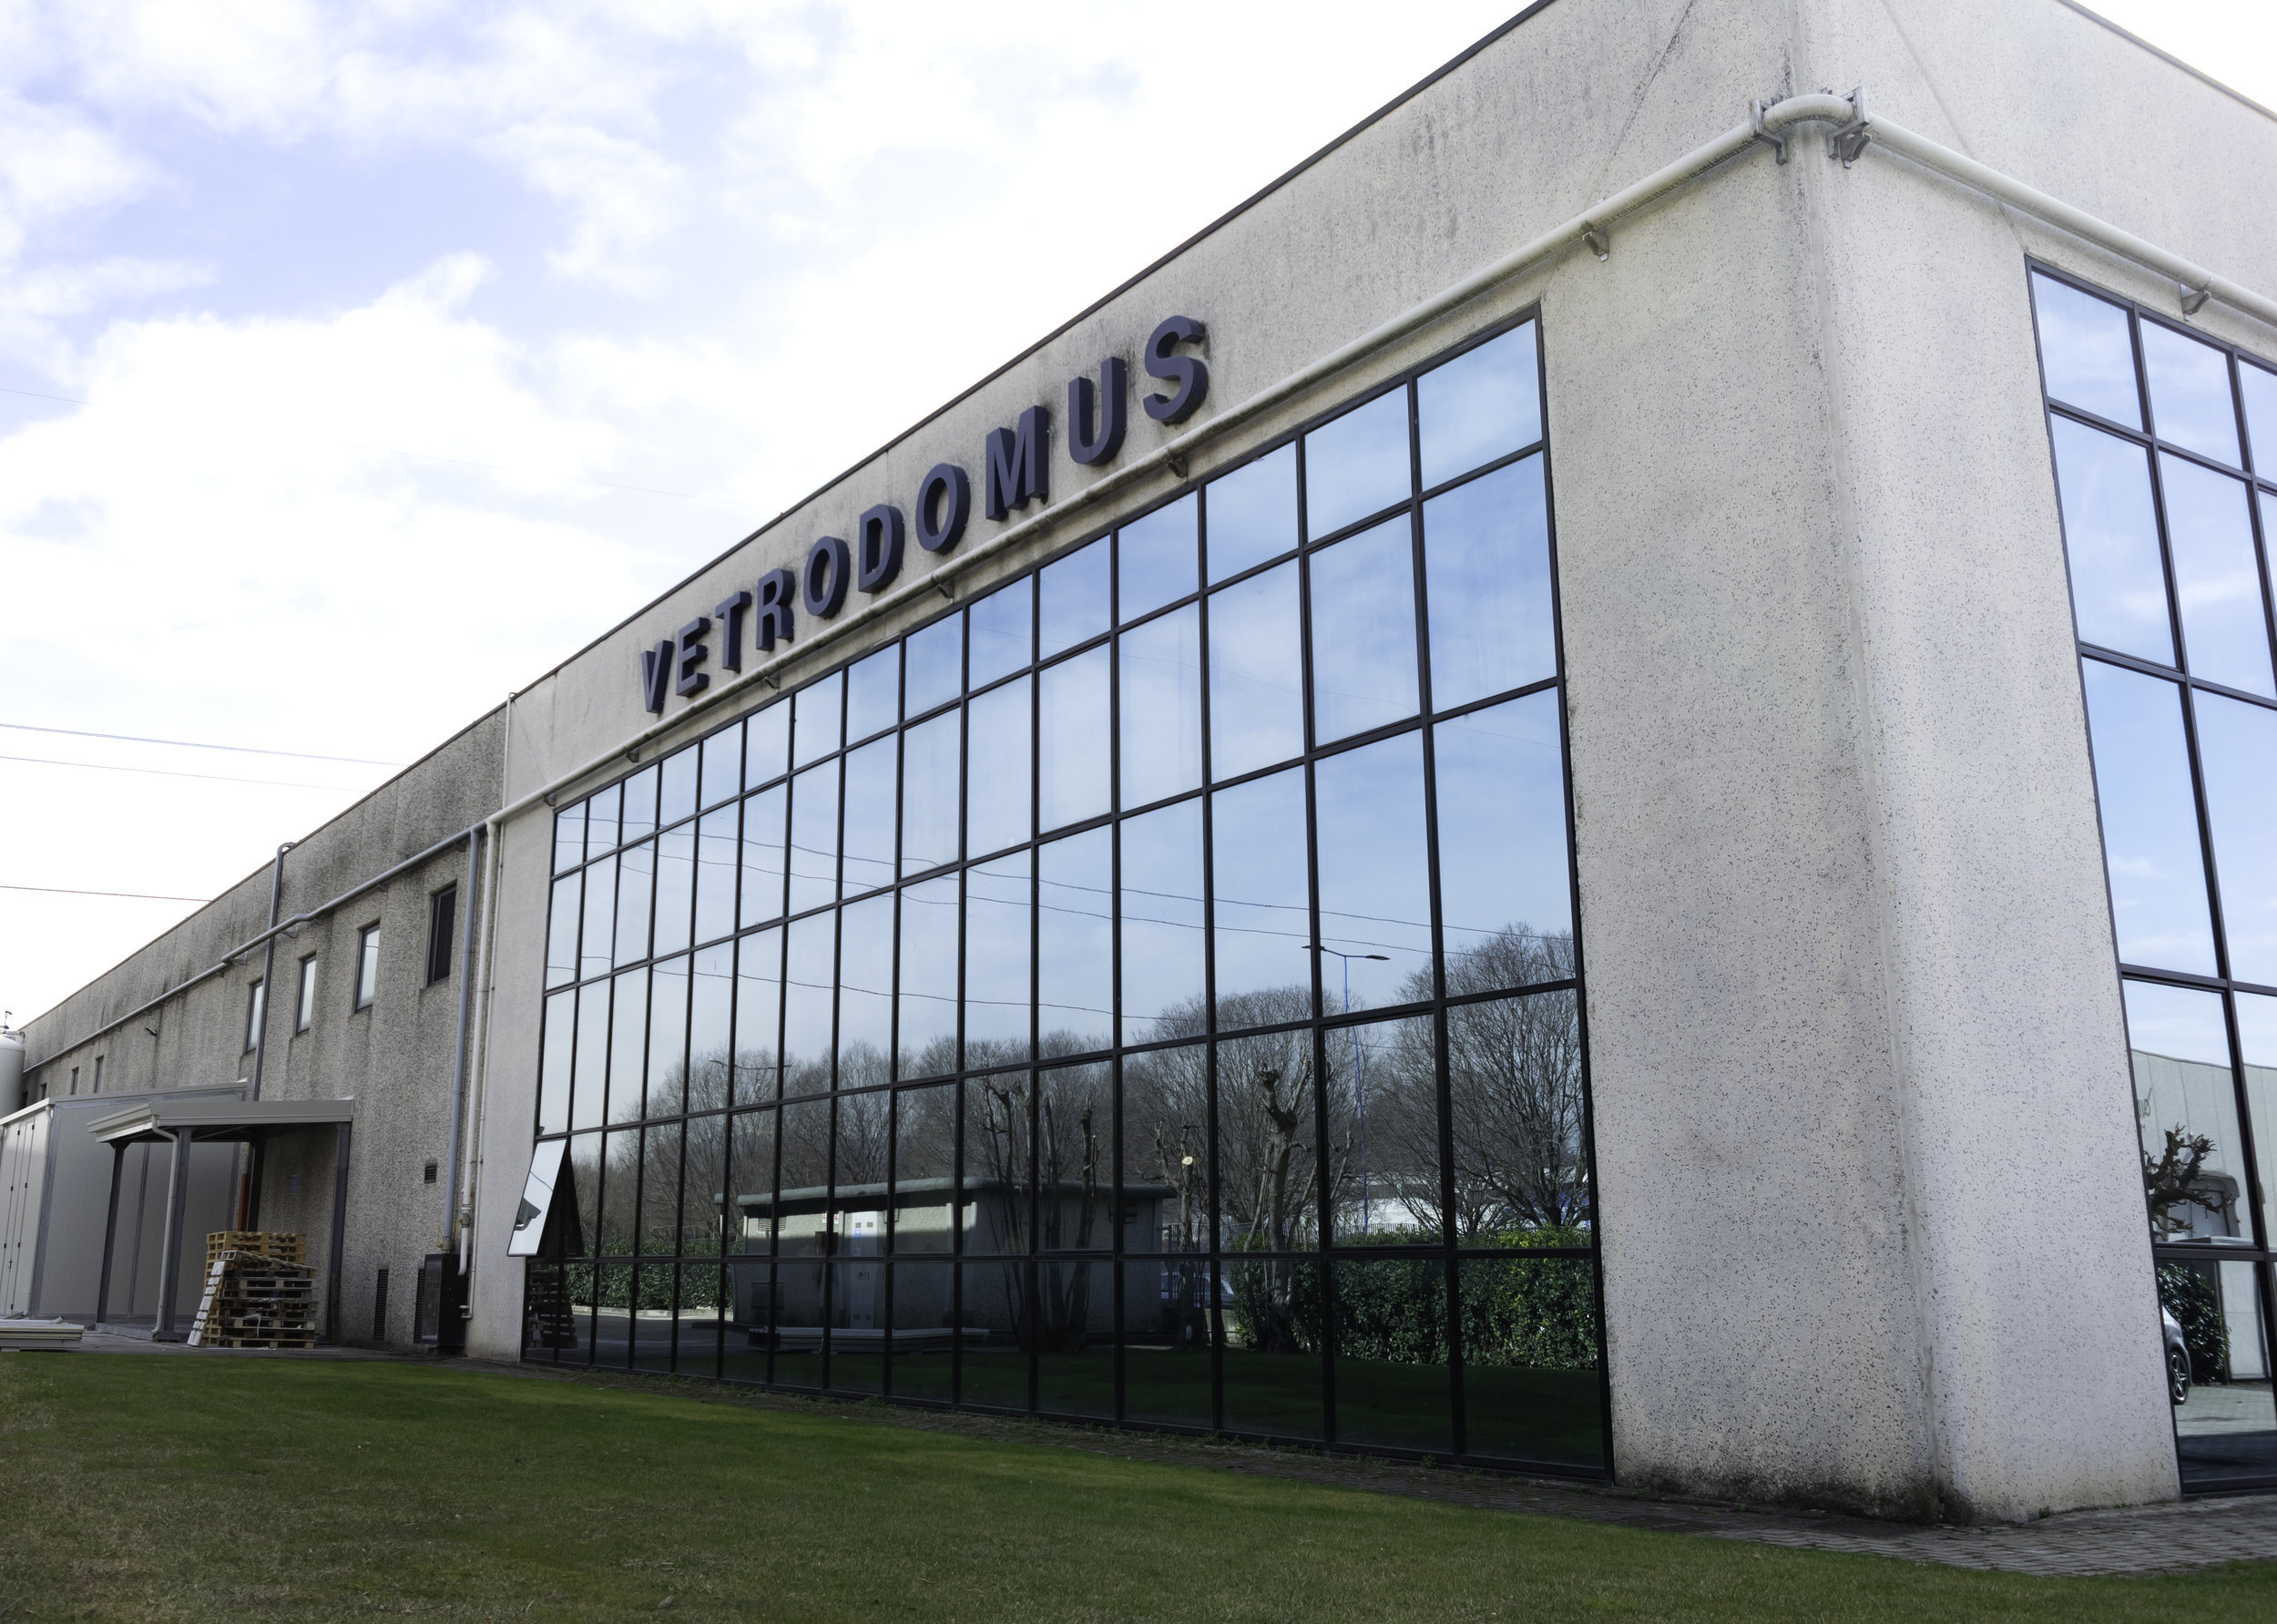 Vetrodomus Headquarters in Brescia (Italy)